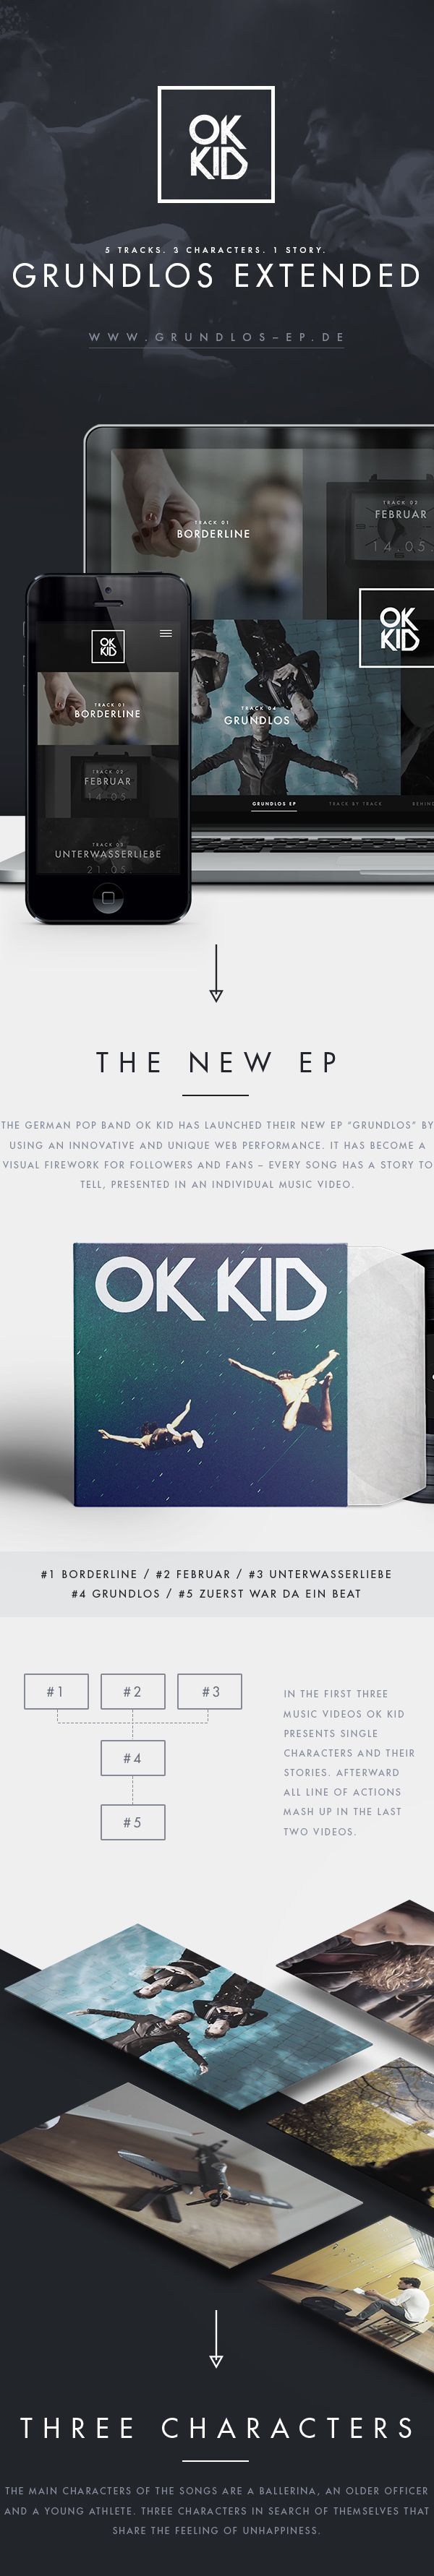 OK KID - Grundlos Extended by Oliver Ecker, via Behance